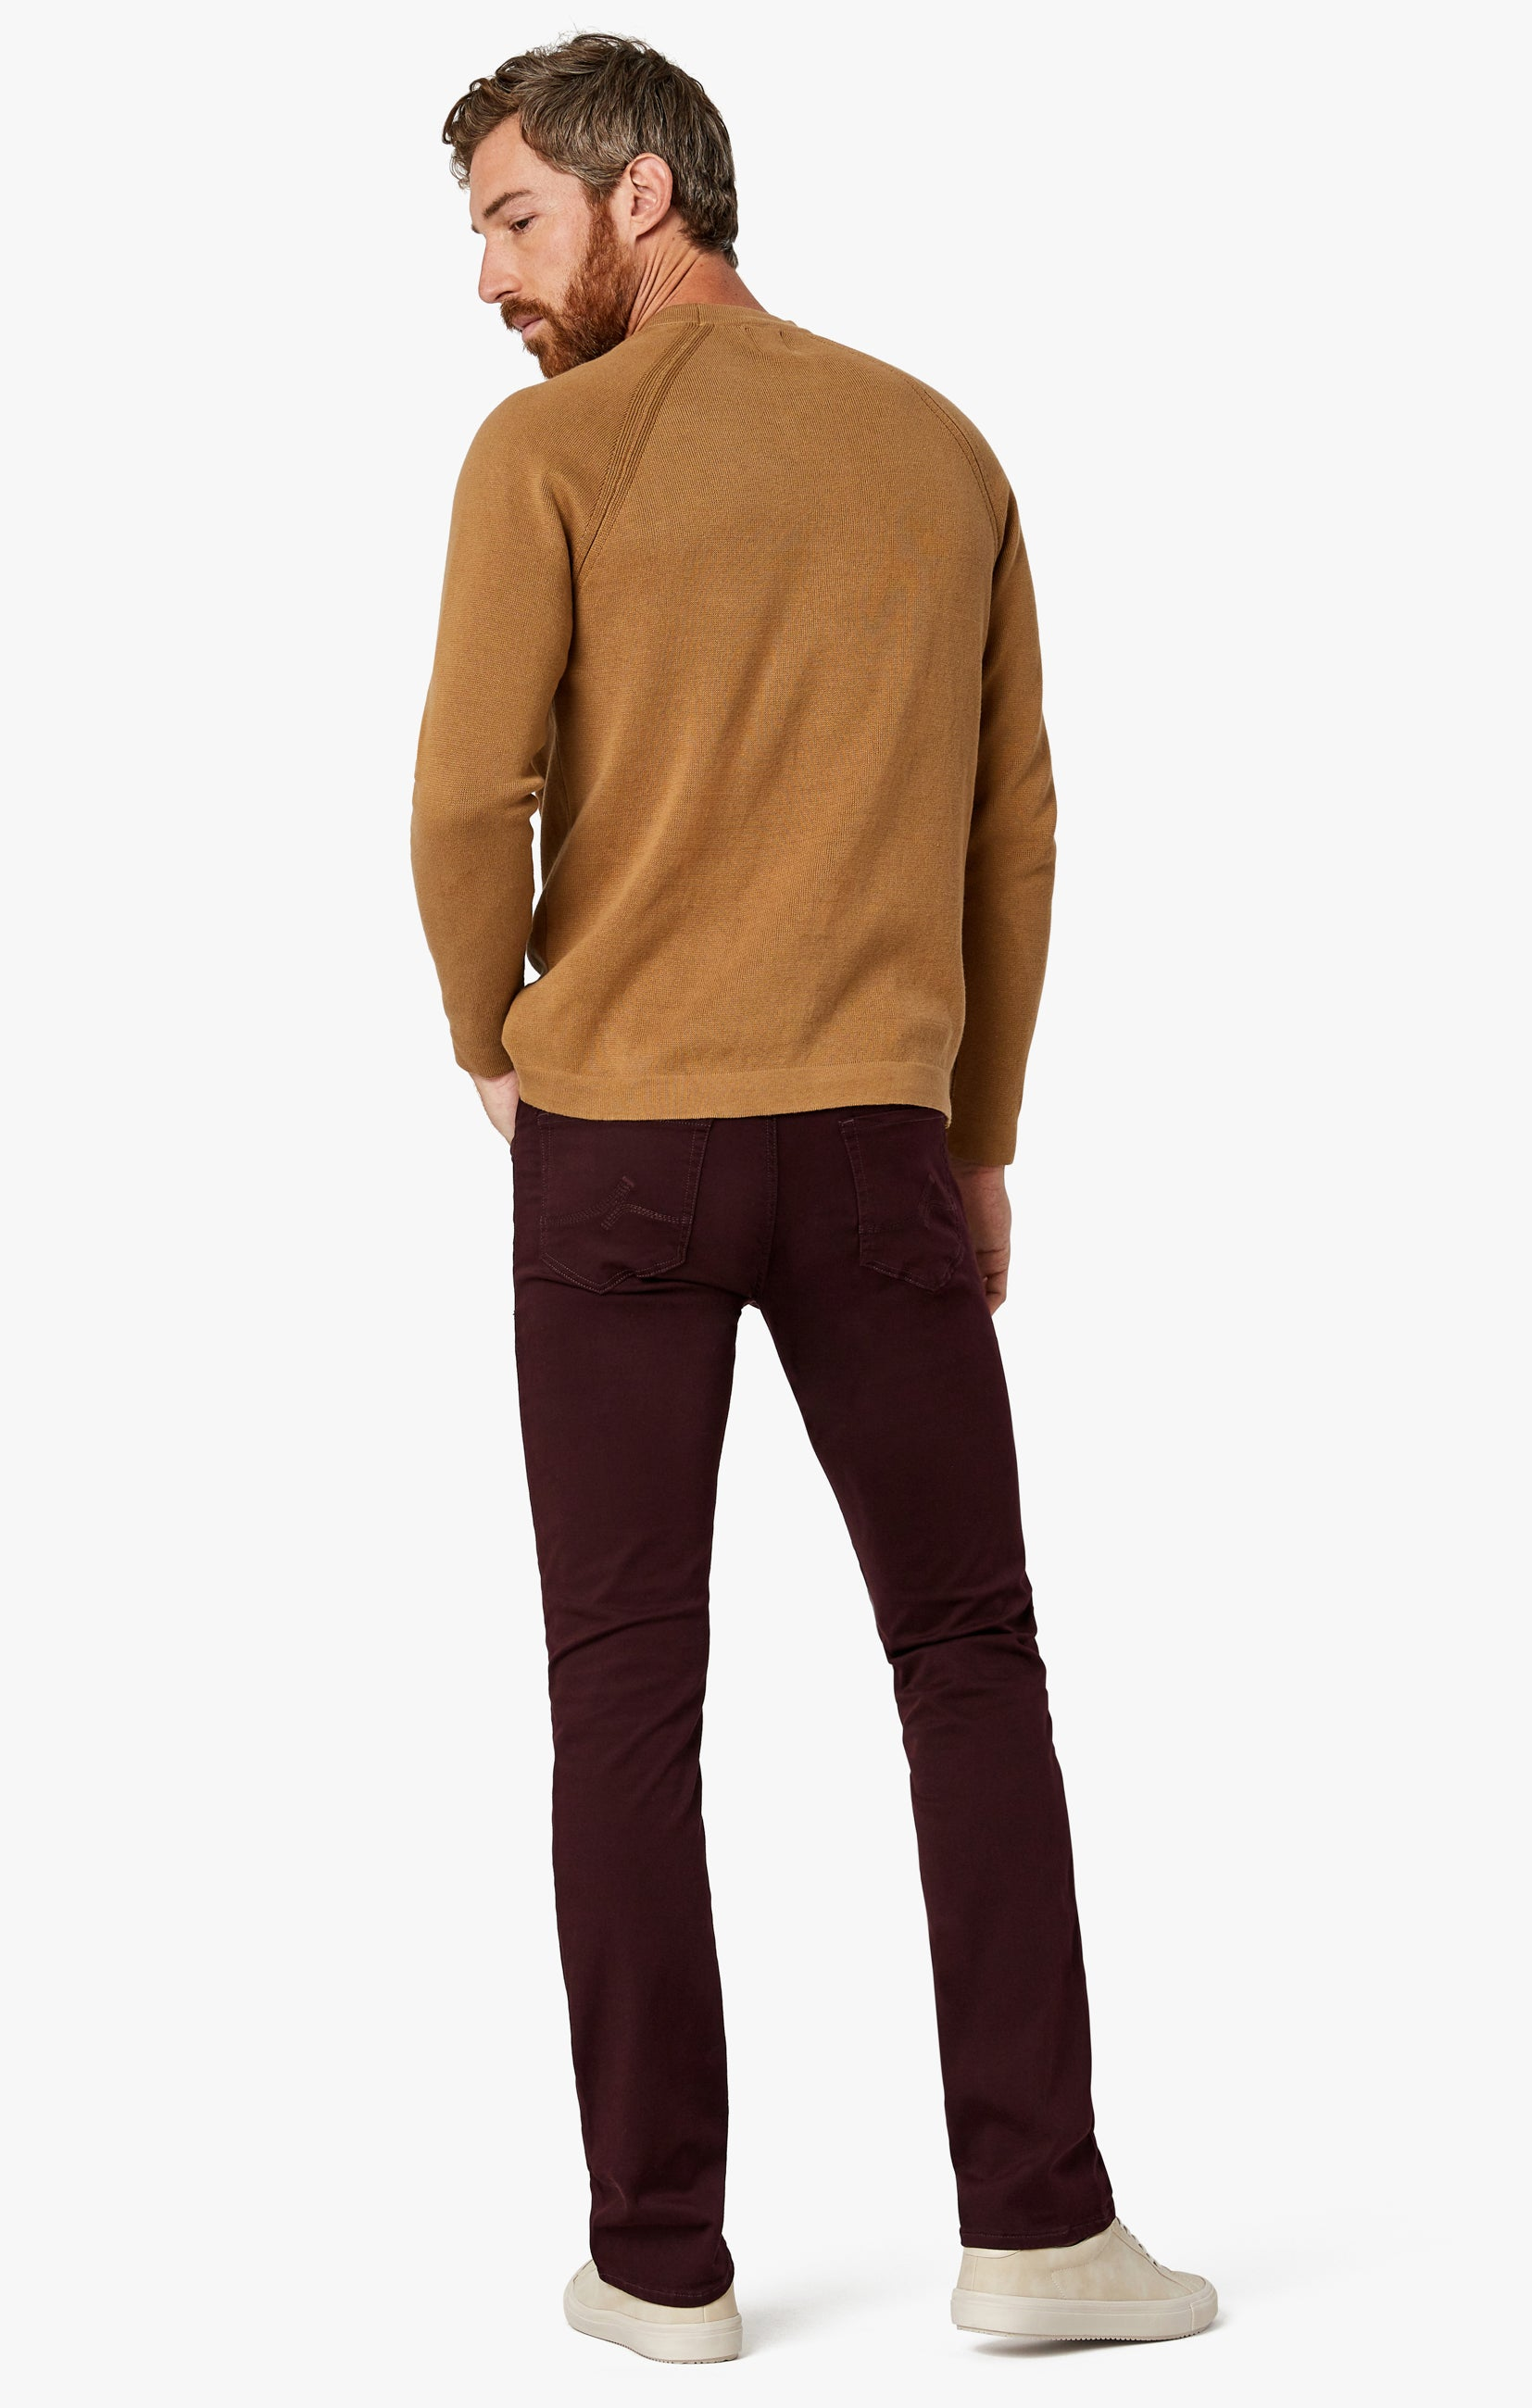 Charisma Relaxed Straight Pants in Wine Twill Image 10